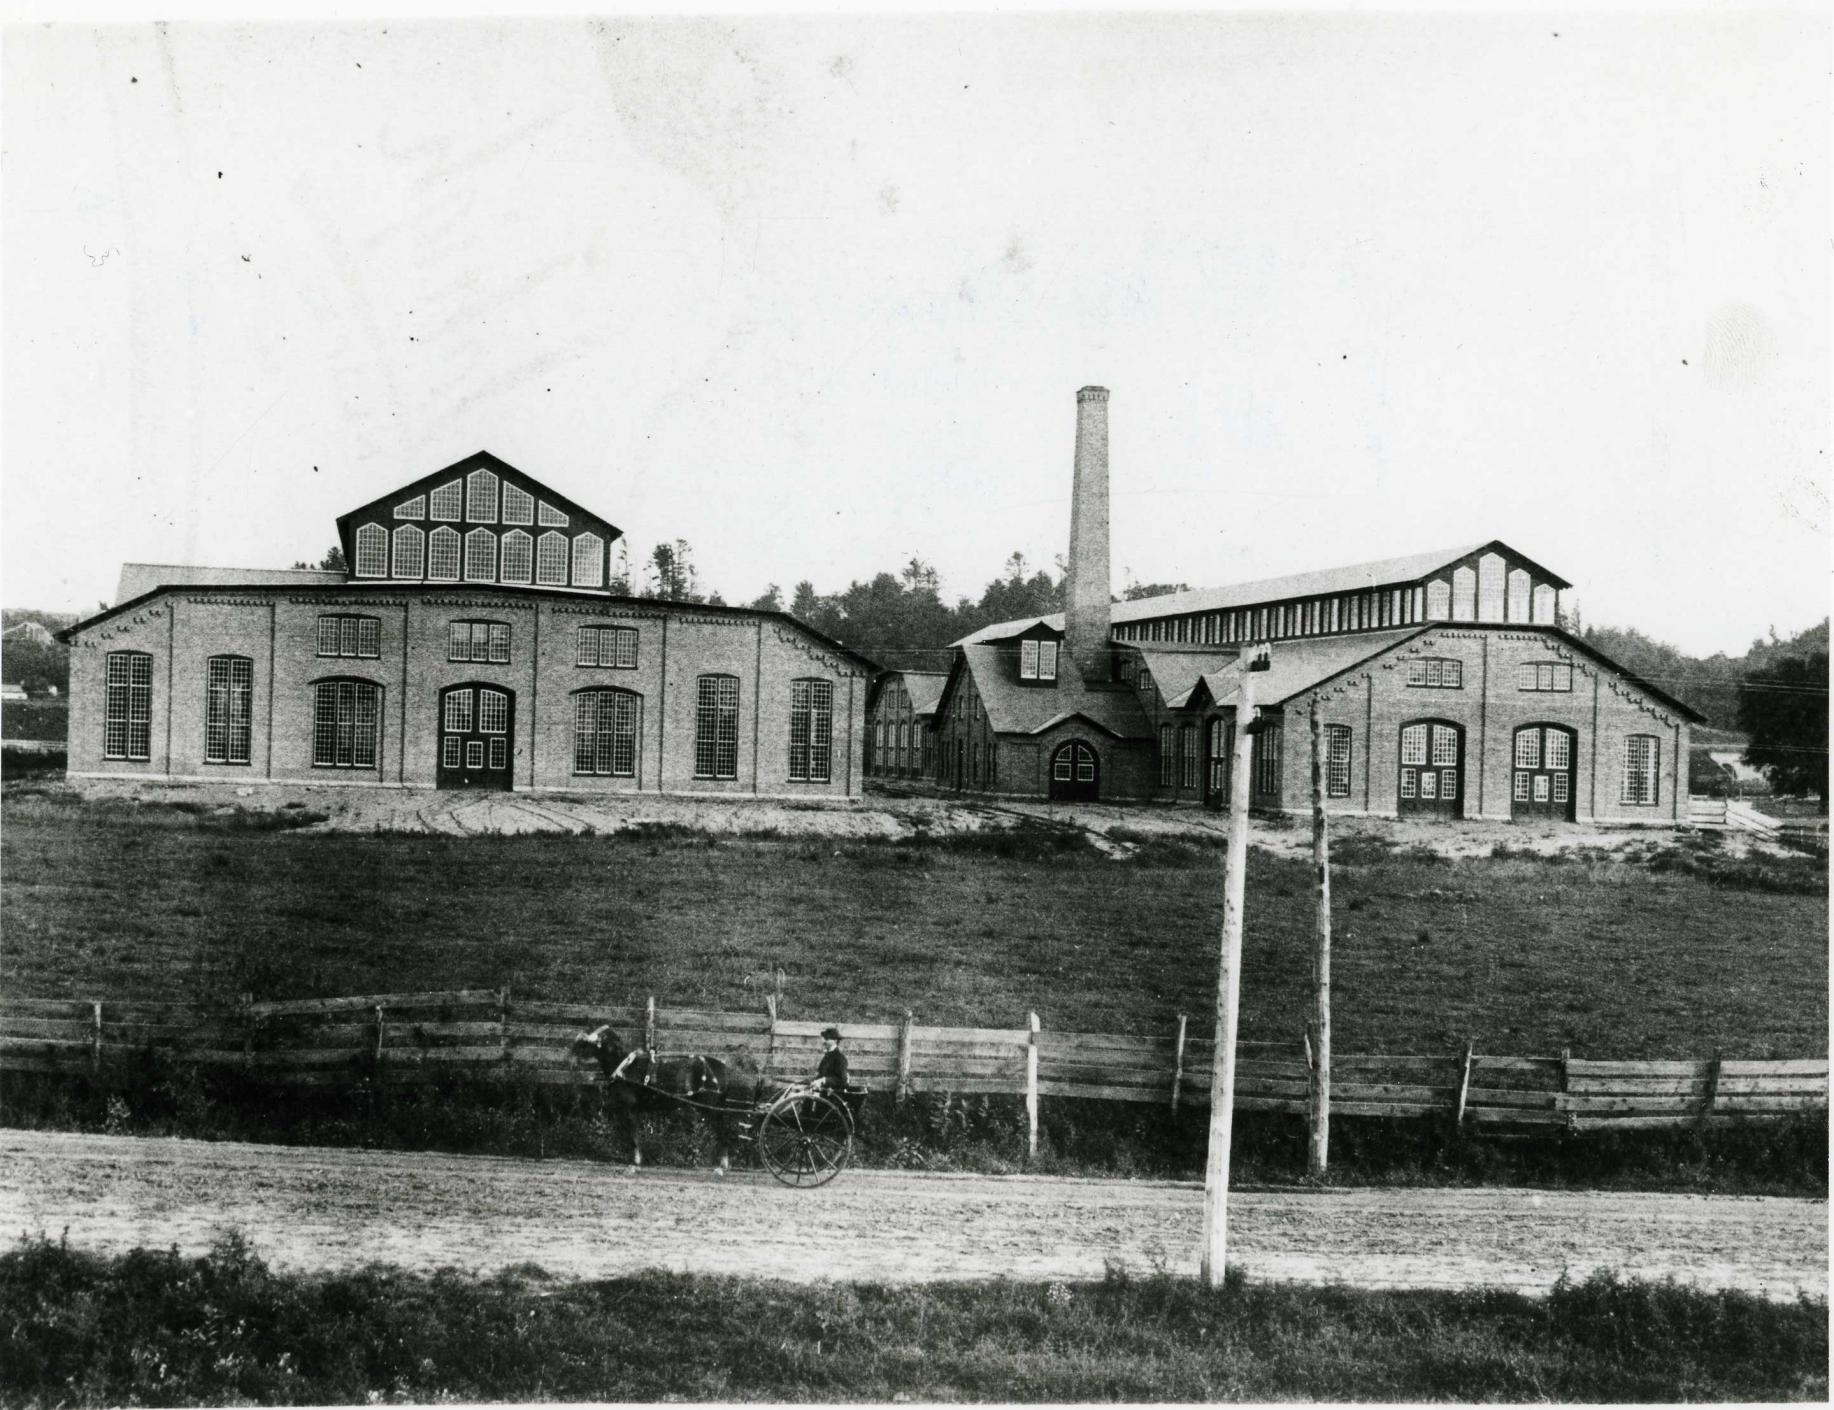 Two original buildings GE circa 1890